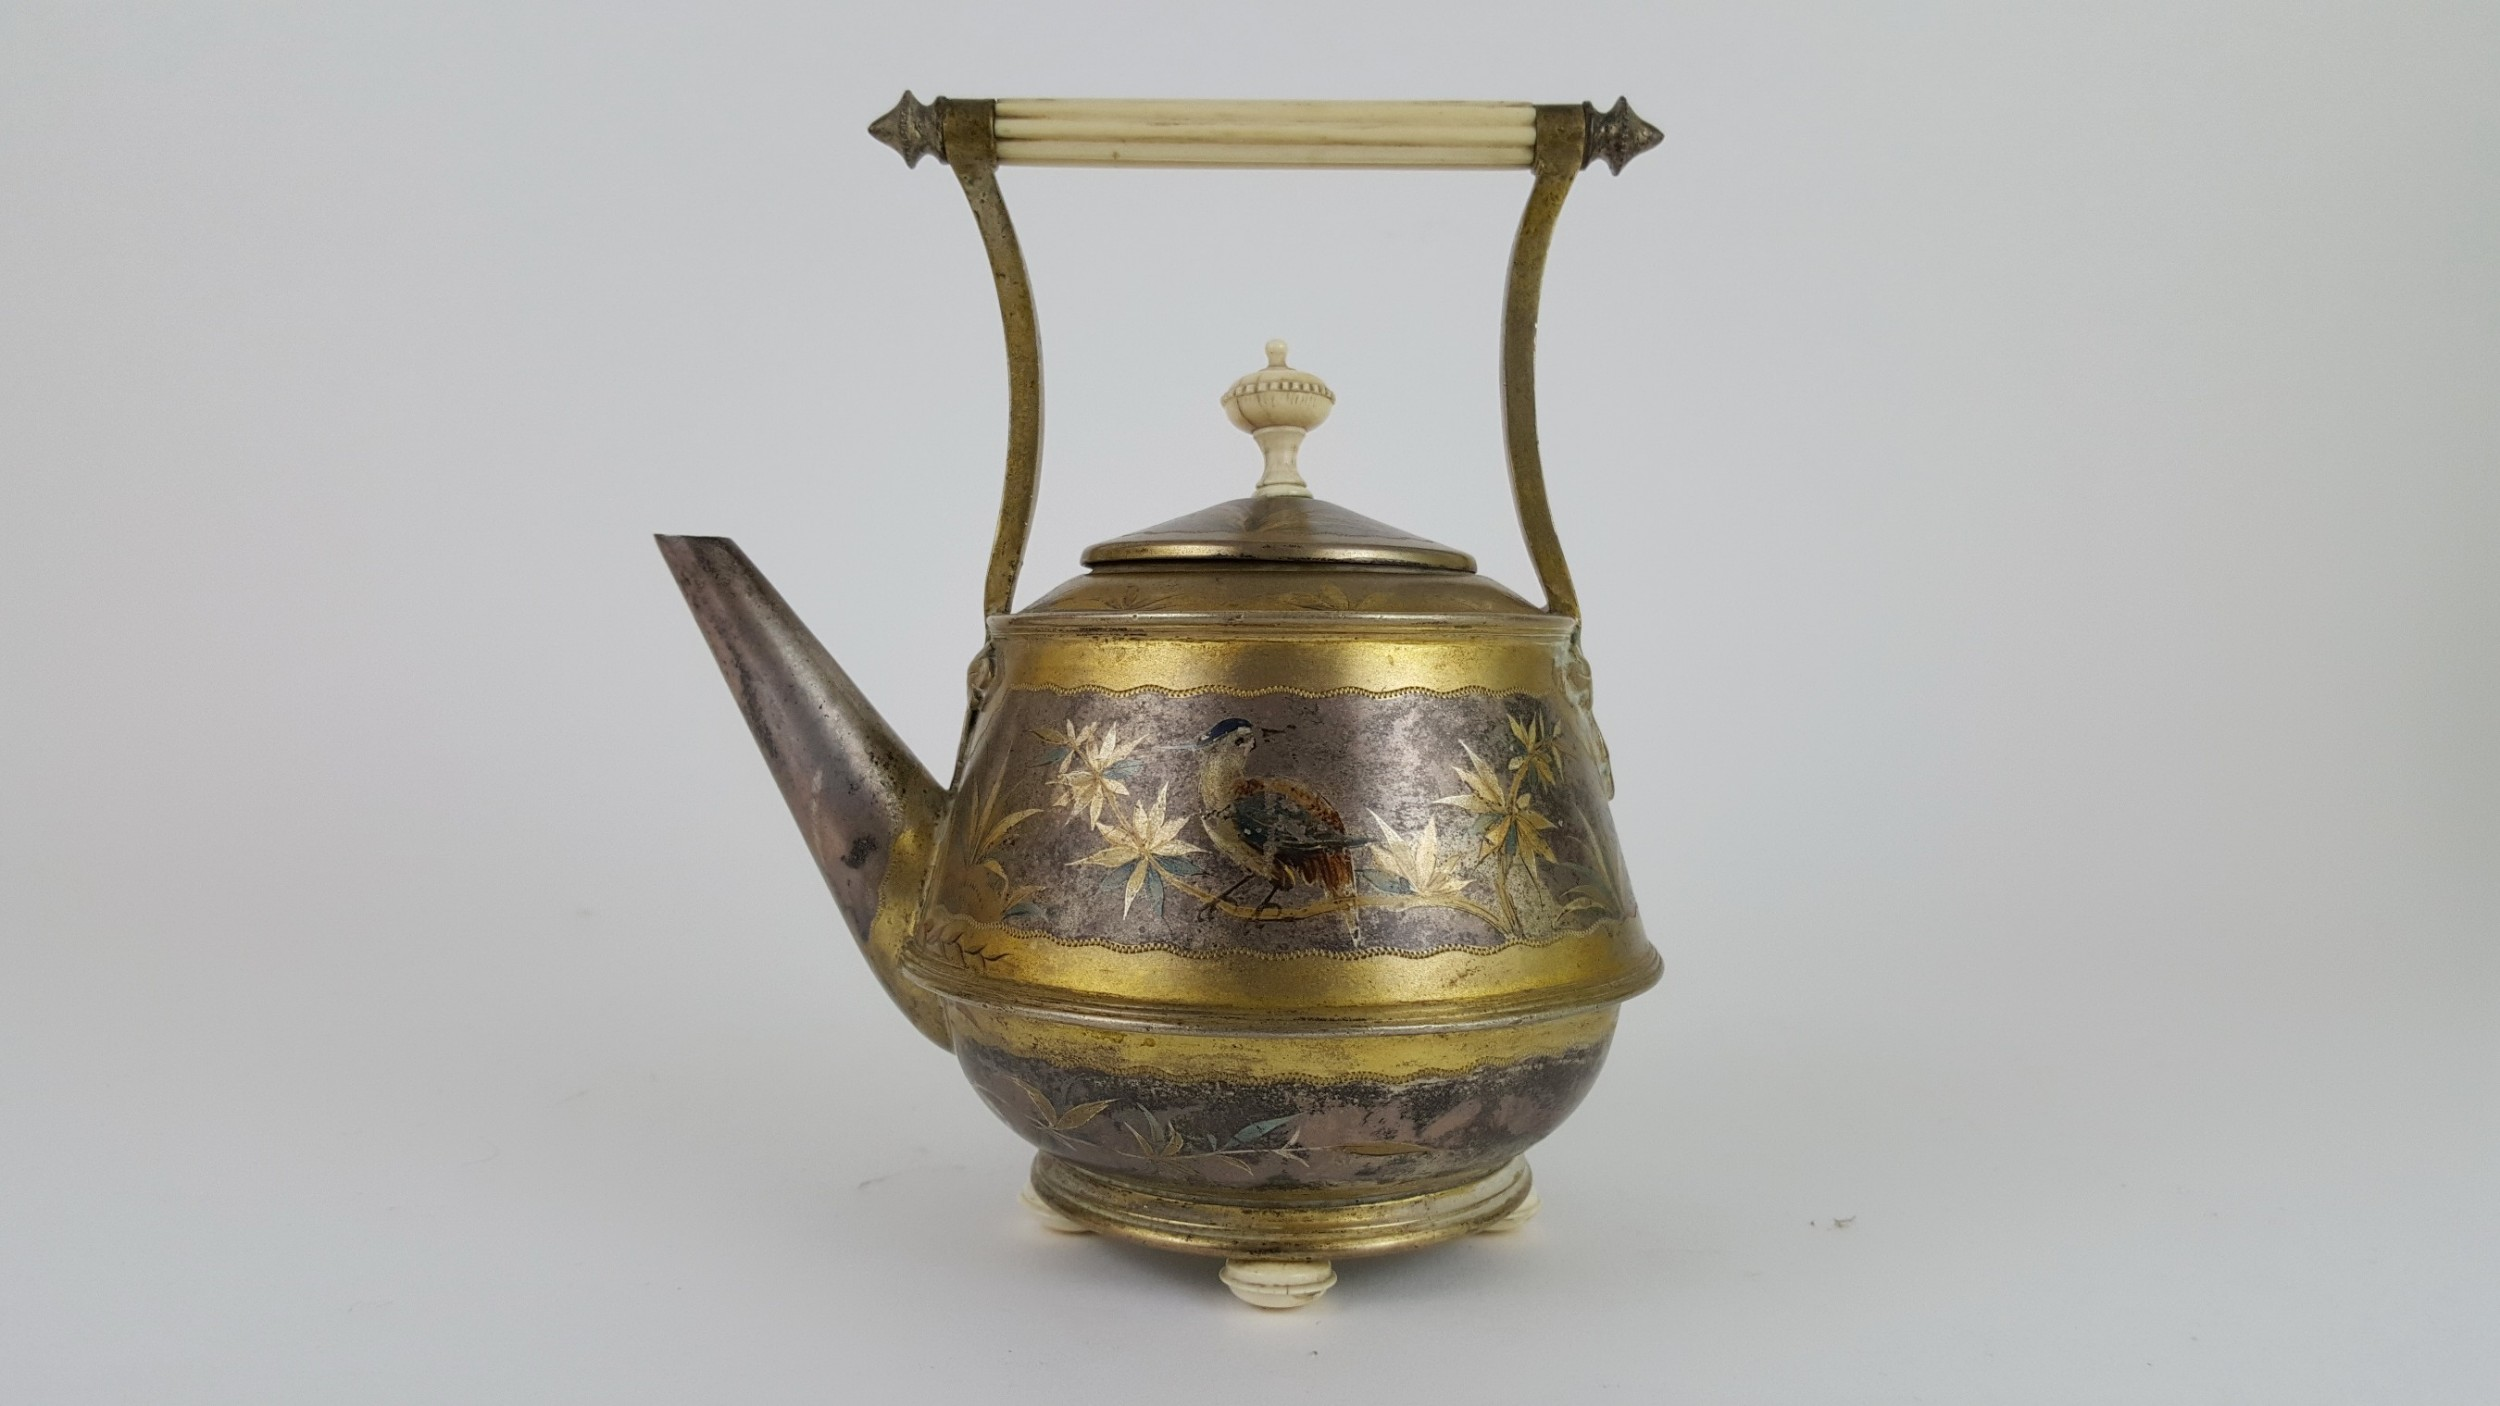 19th century english silver and gold plated tea pot